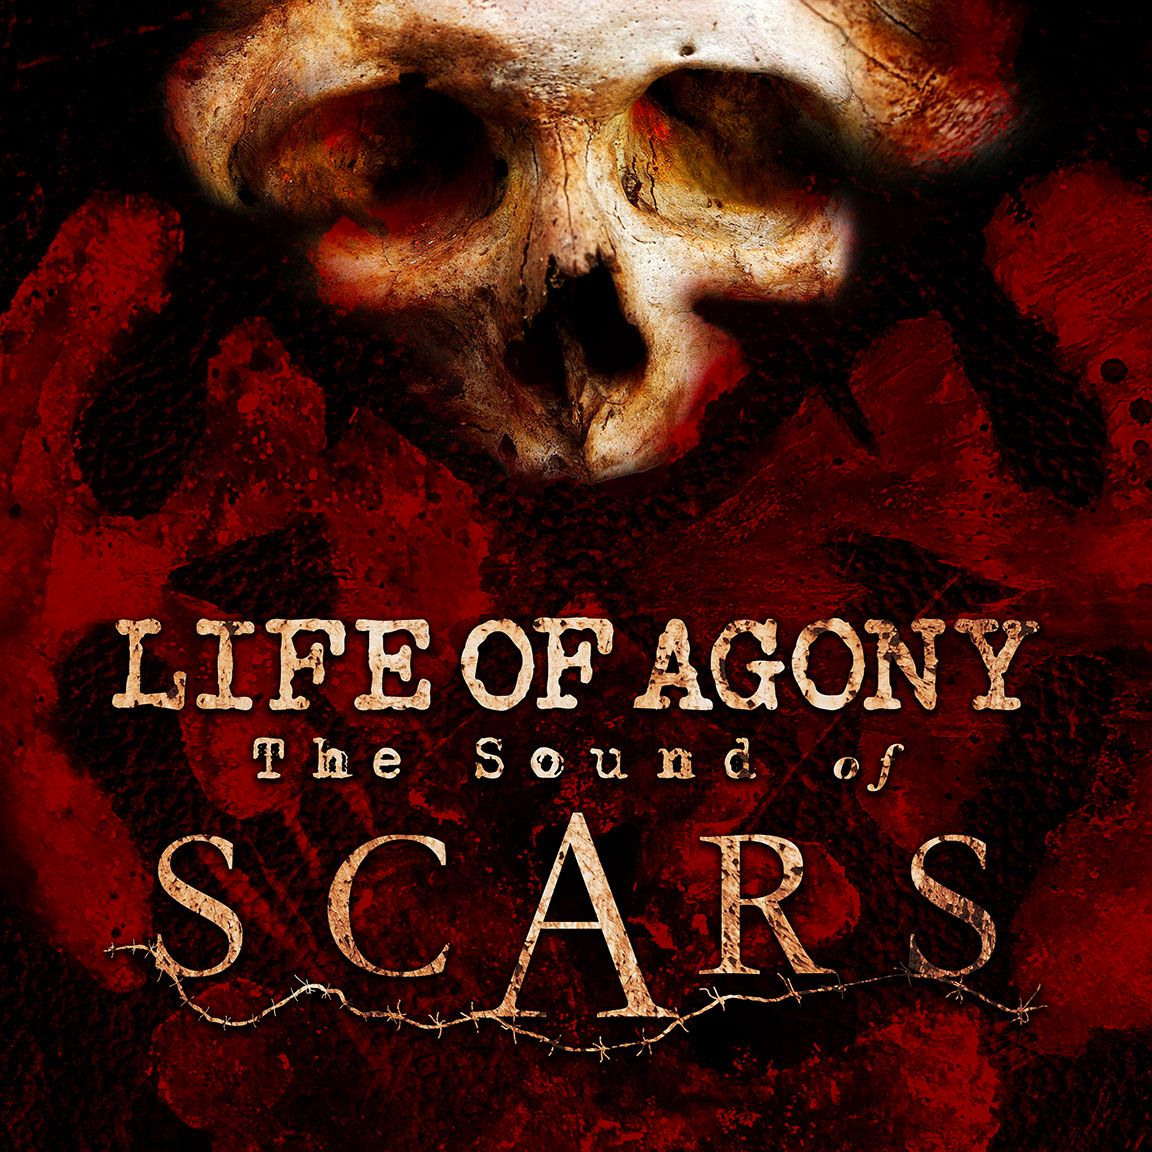 life-of-agony-the-sound-of-scars.jpg